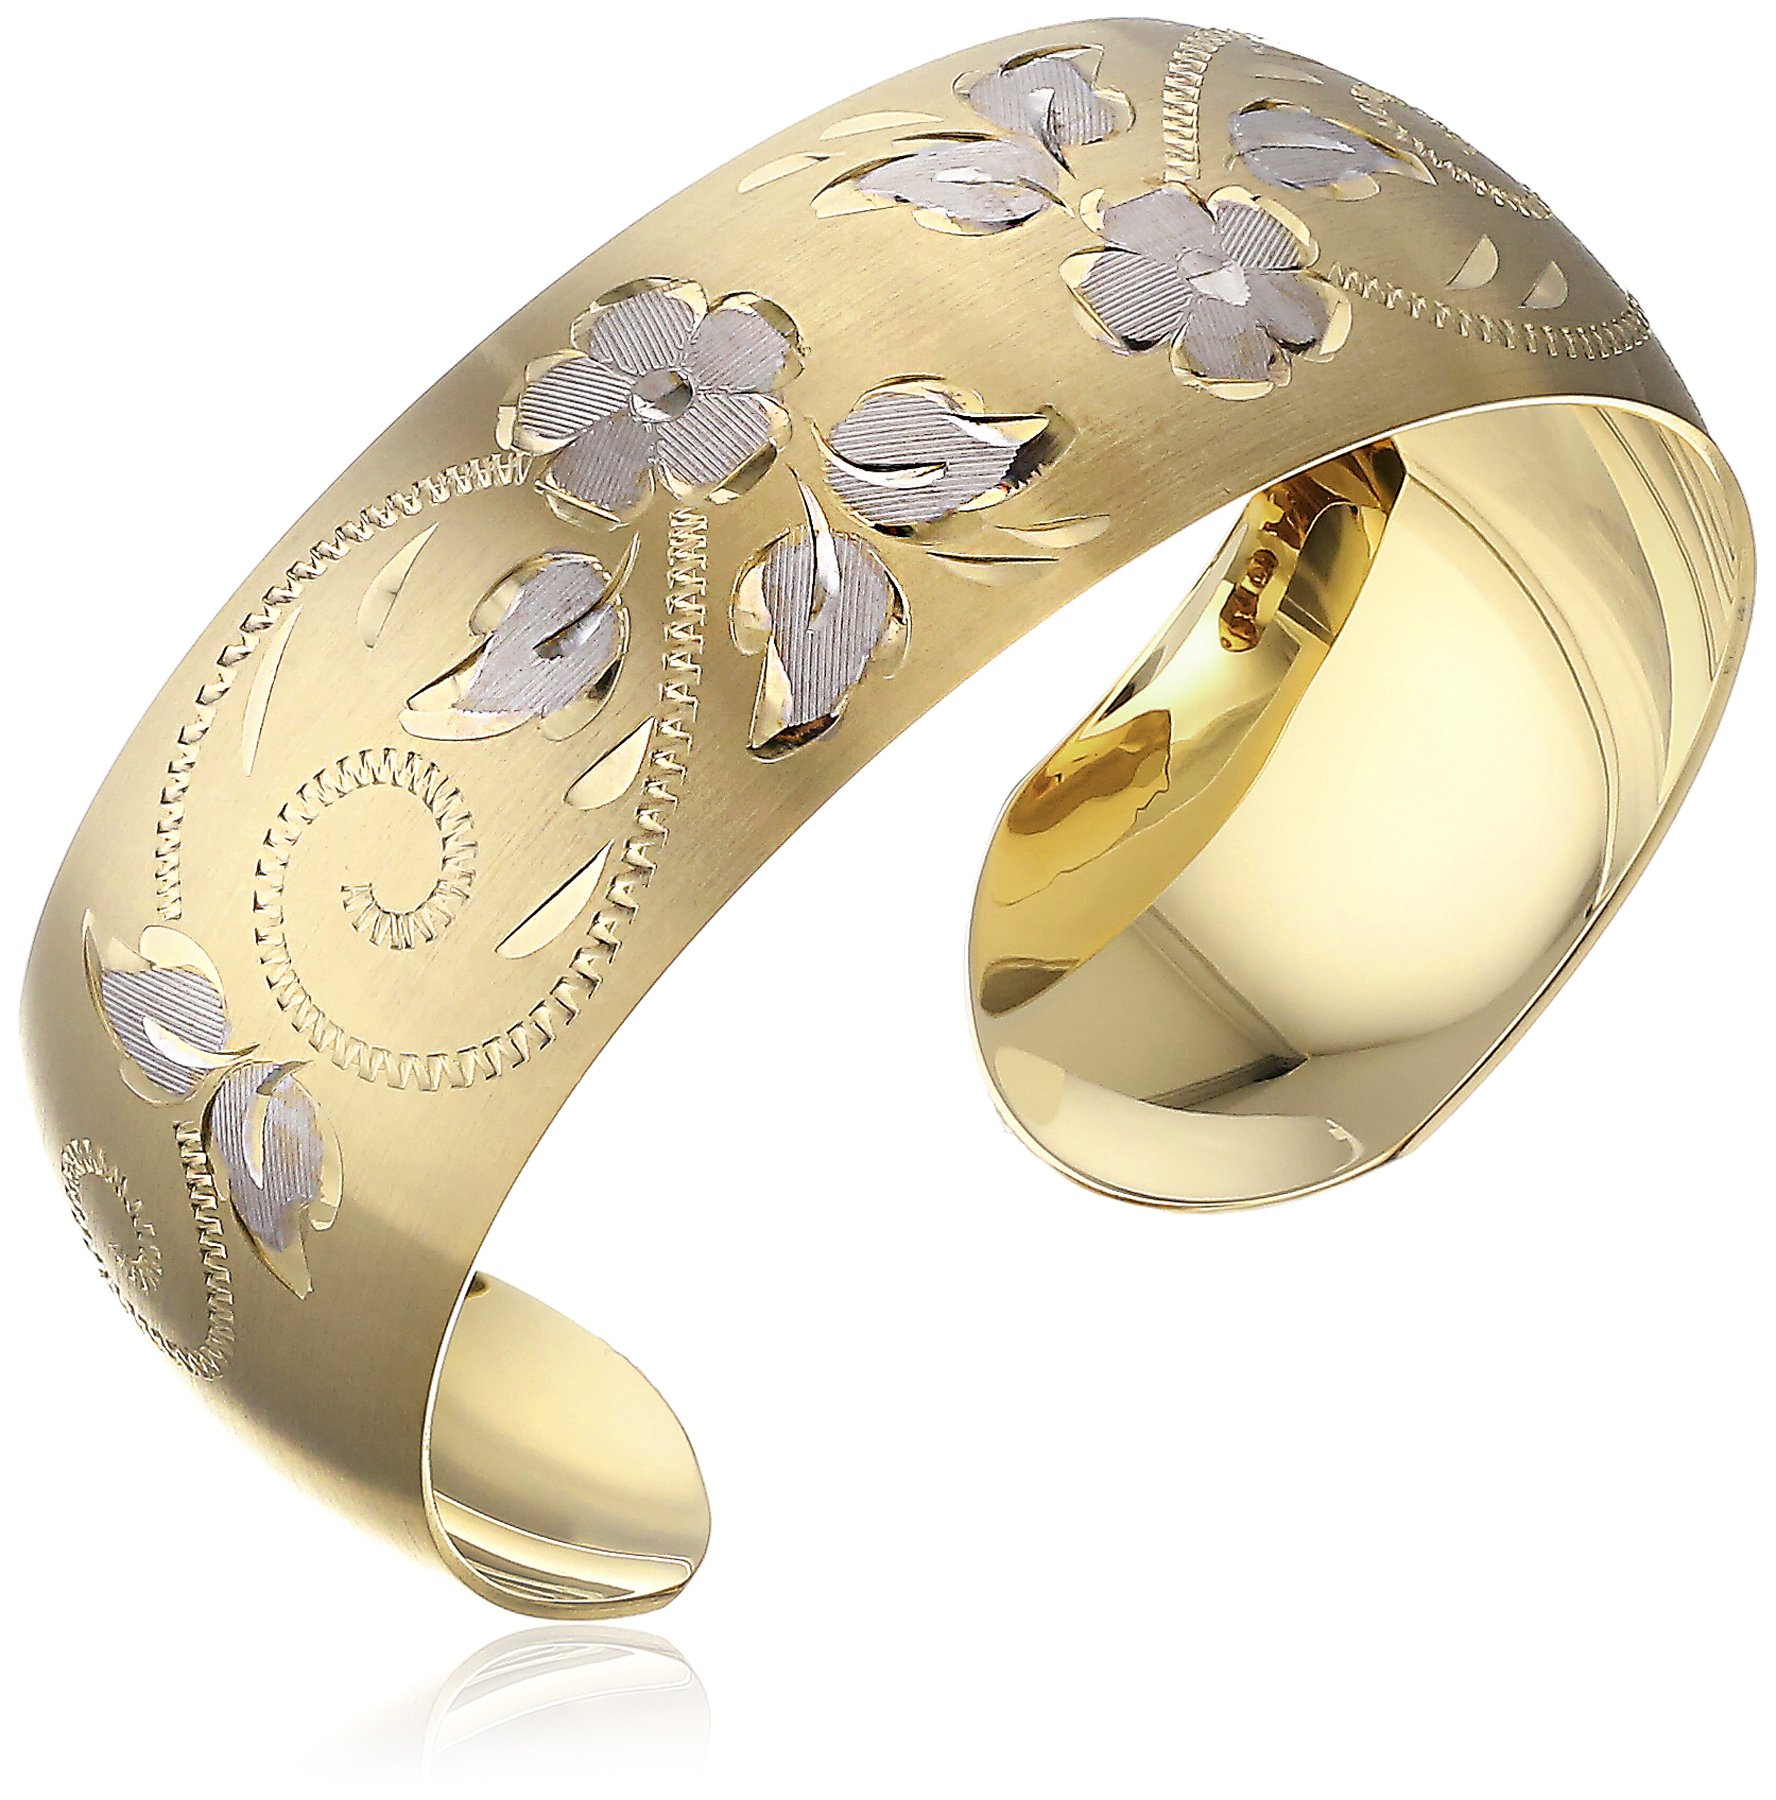 14k Yellow Gold-Filled Hand Engraved Cuff Bracelet by Amazon Collection